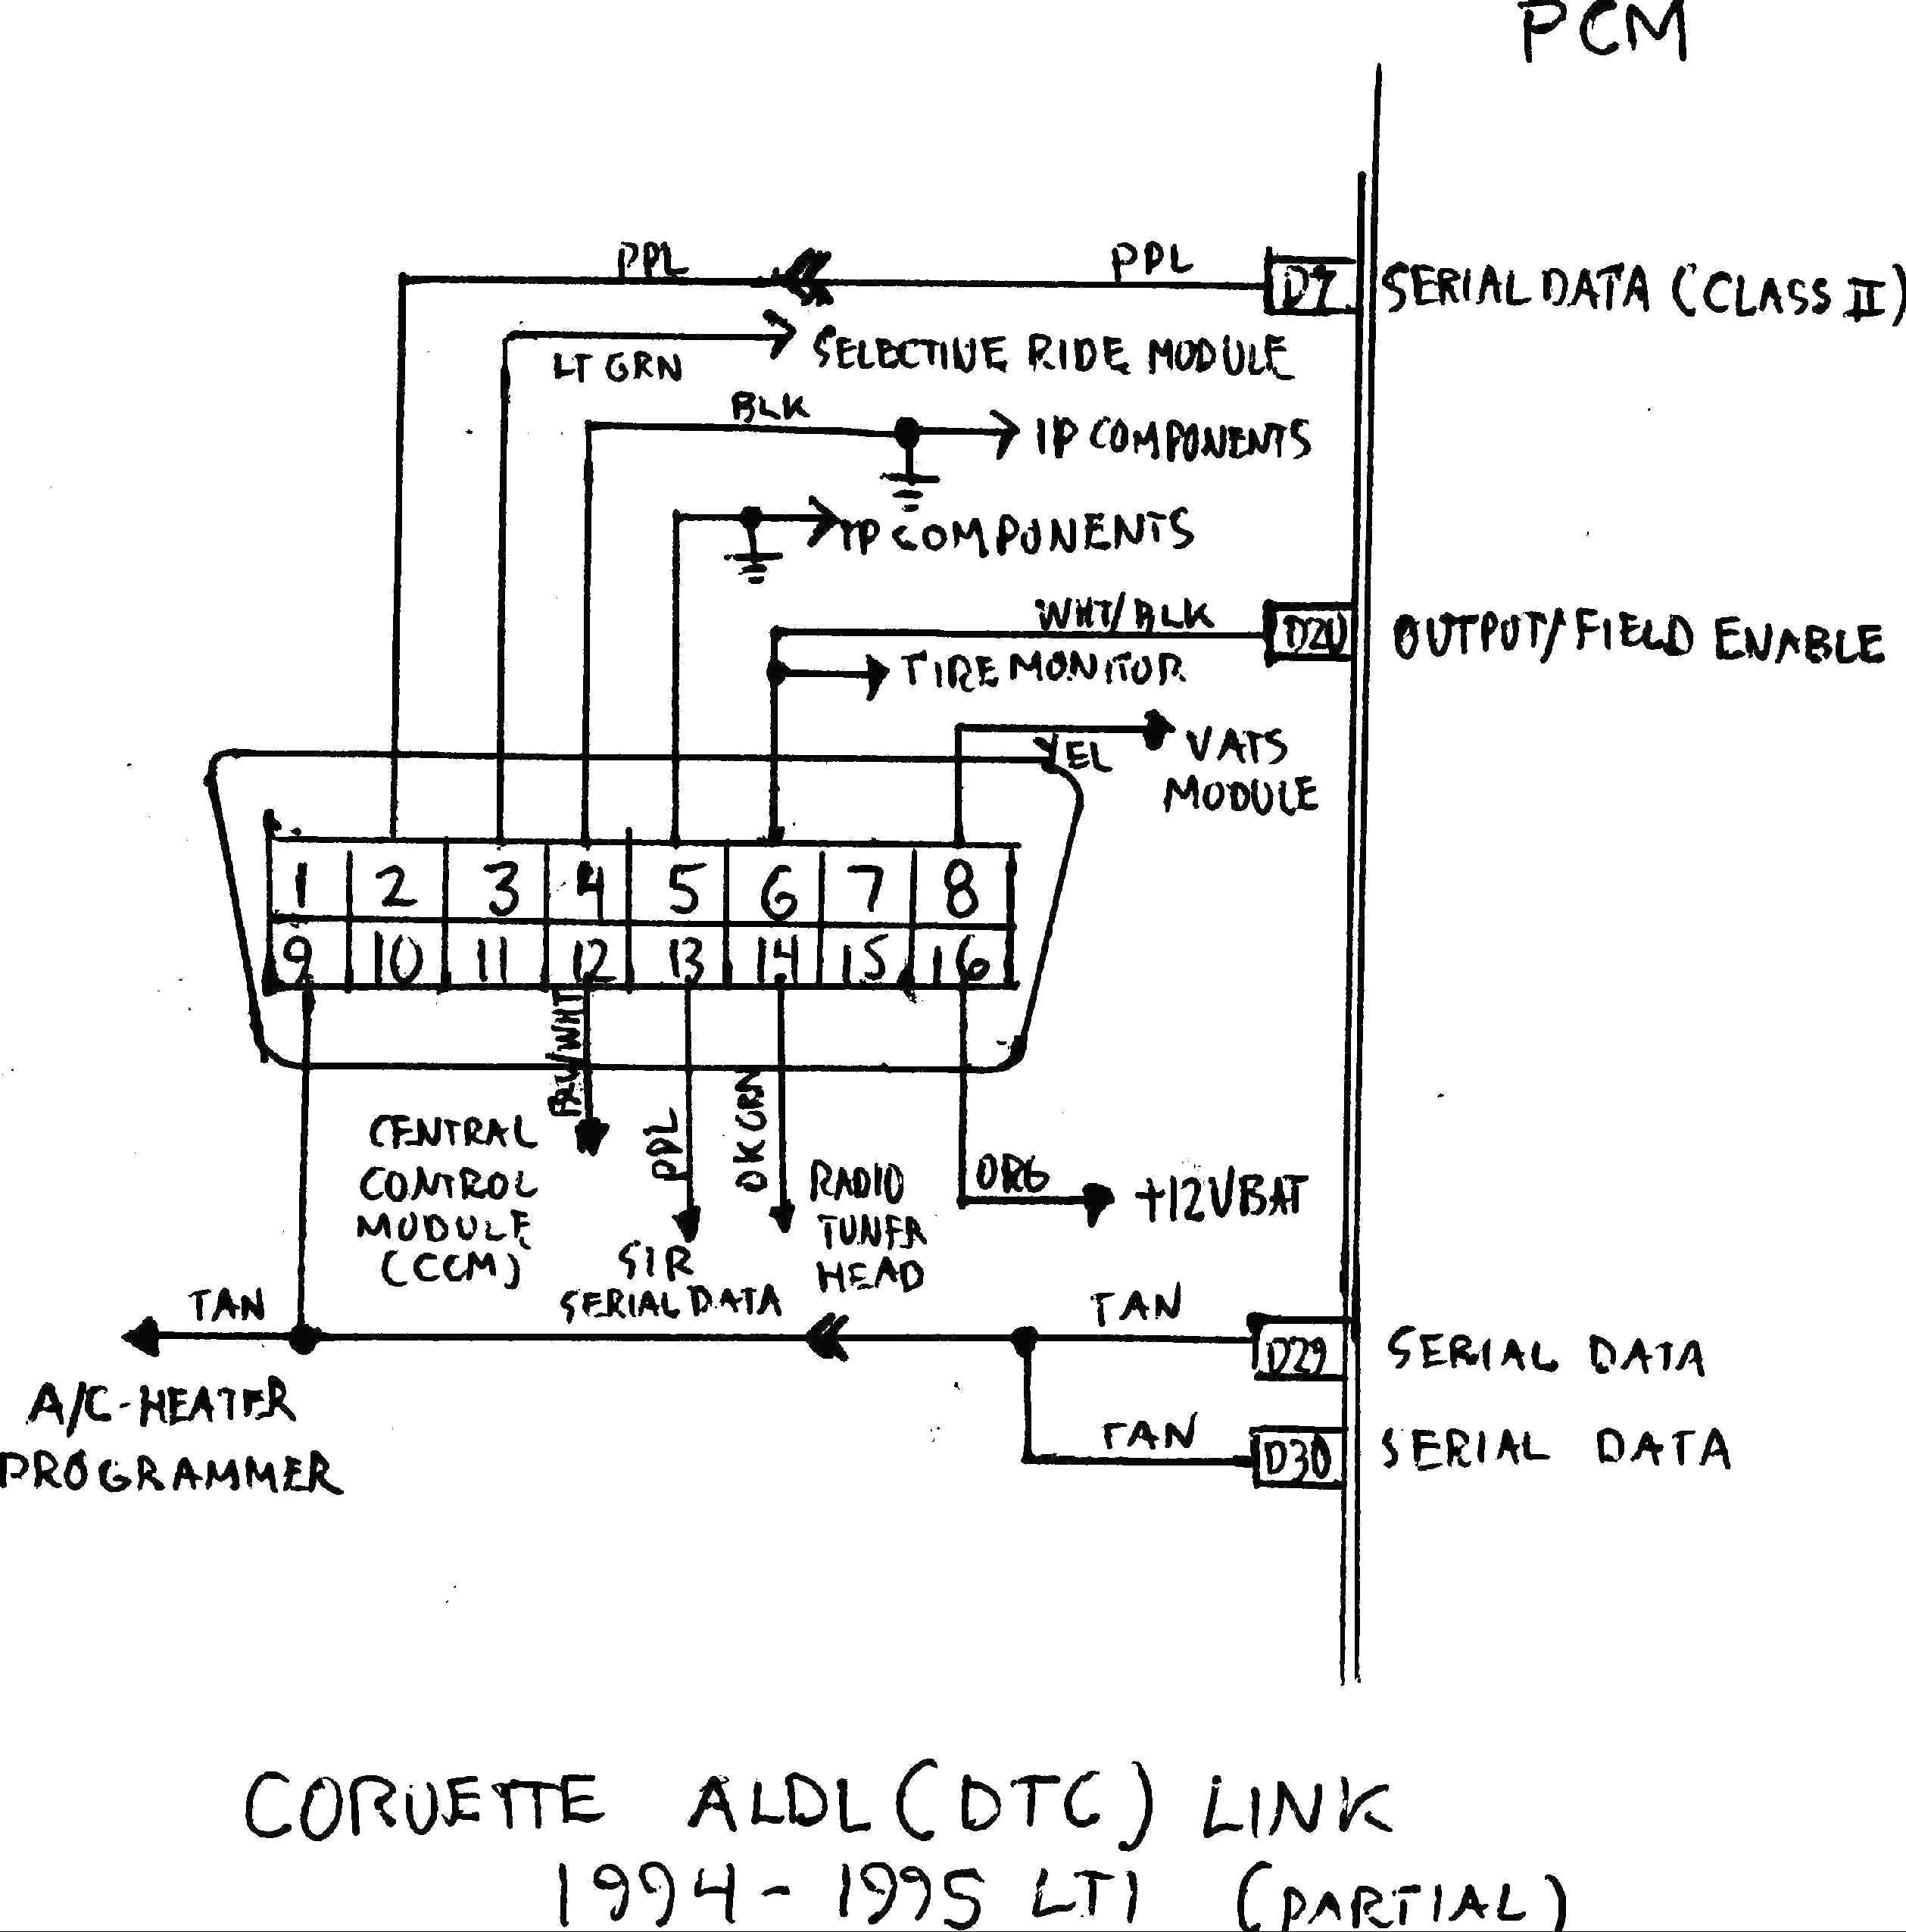 small resolution of gm vats wiring diagram wiring diagram pass gm passkey bypass diagram lt vats wiring diagram 1